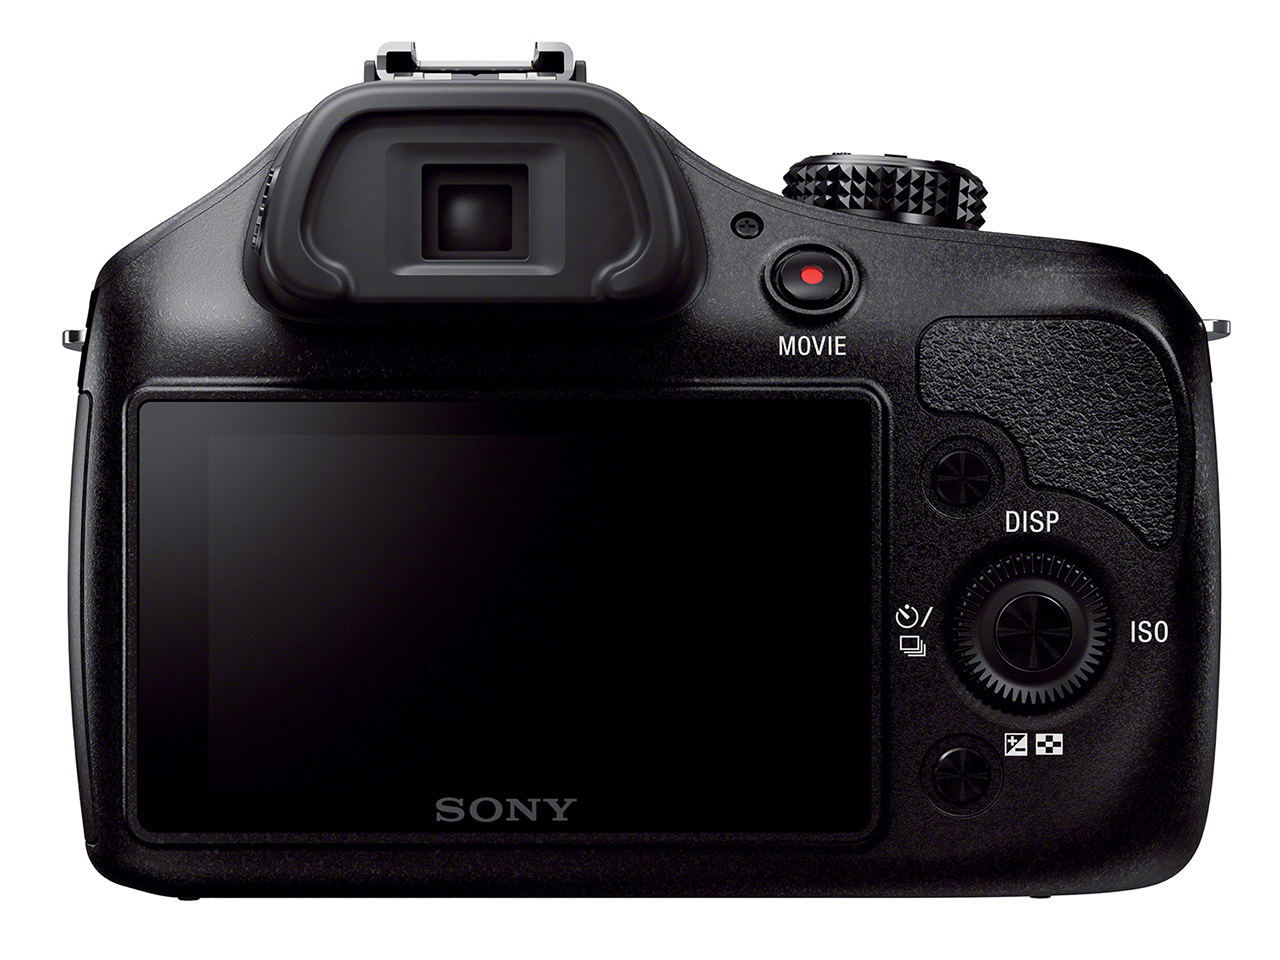 Sony A3000 - A DSLR-Style Mirrorless Interchangeable Lens Camera - Digital Photography Live